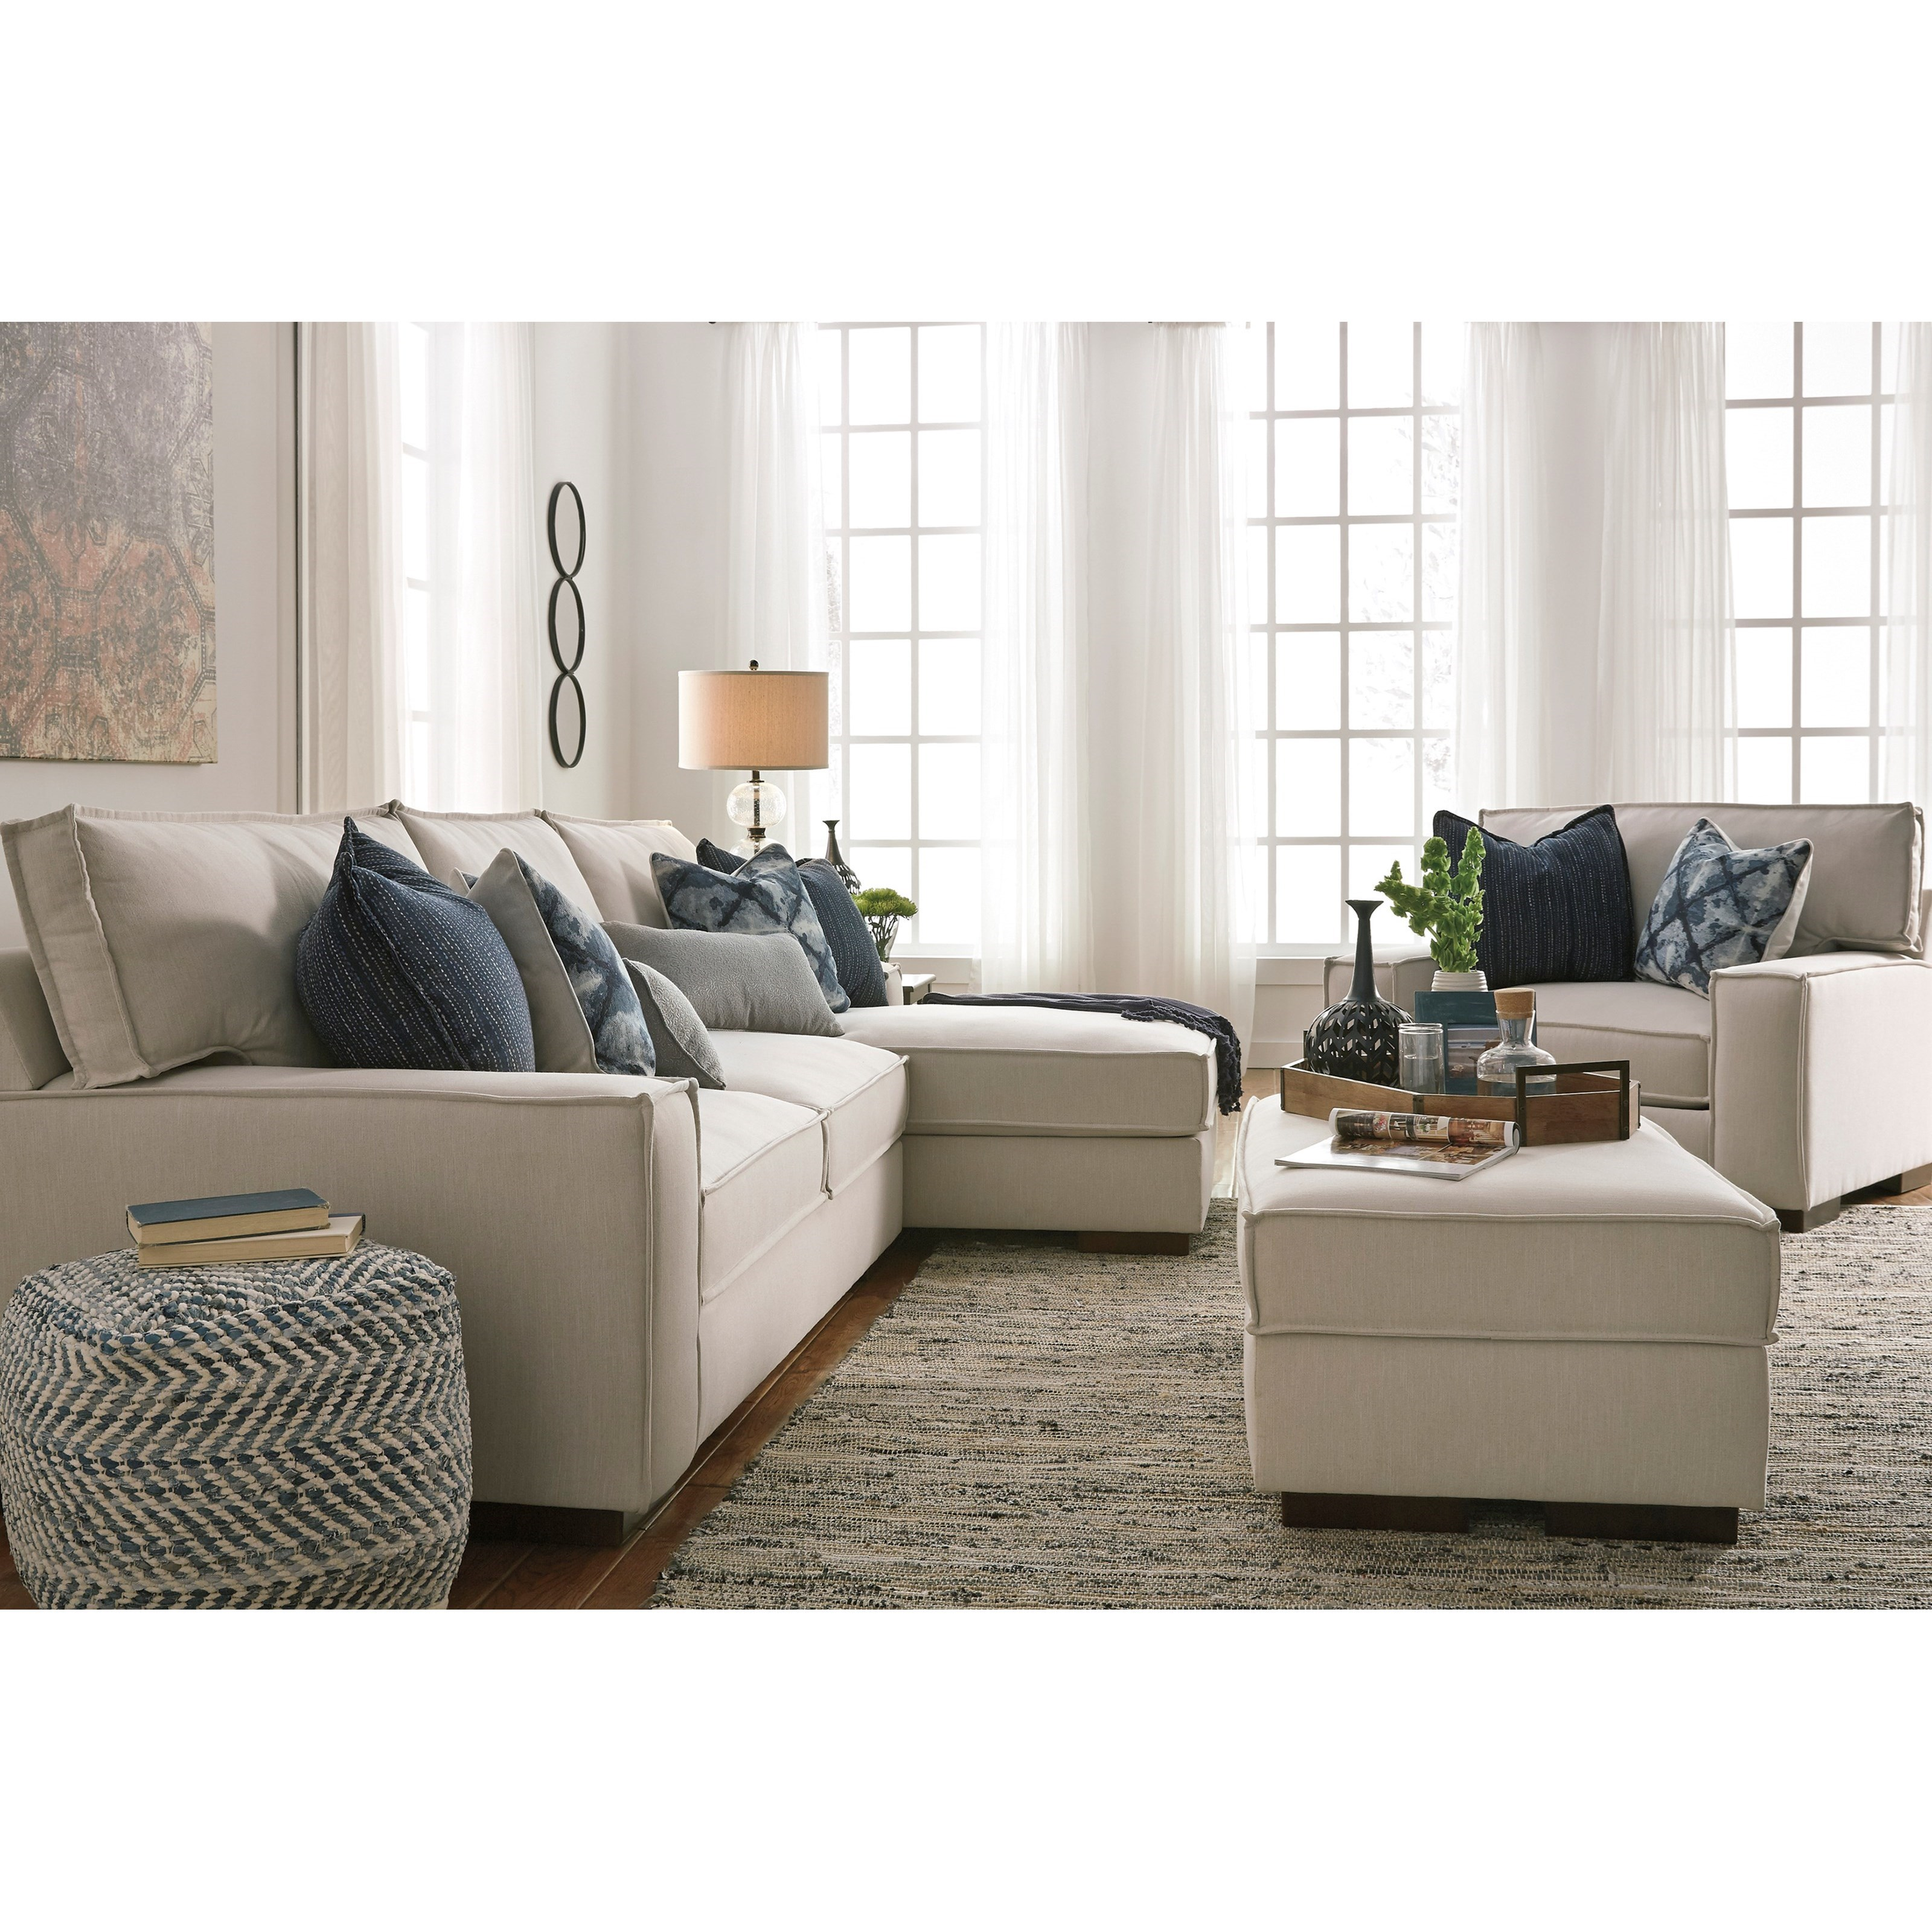 Modern 2 Piece Sectional with Right Chaise and UltraPlush Seat